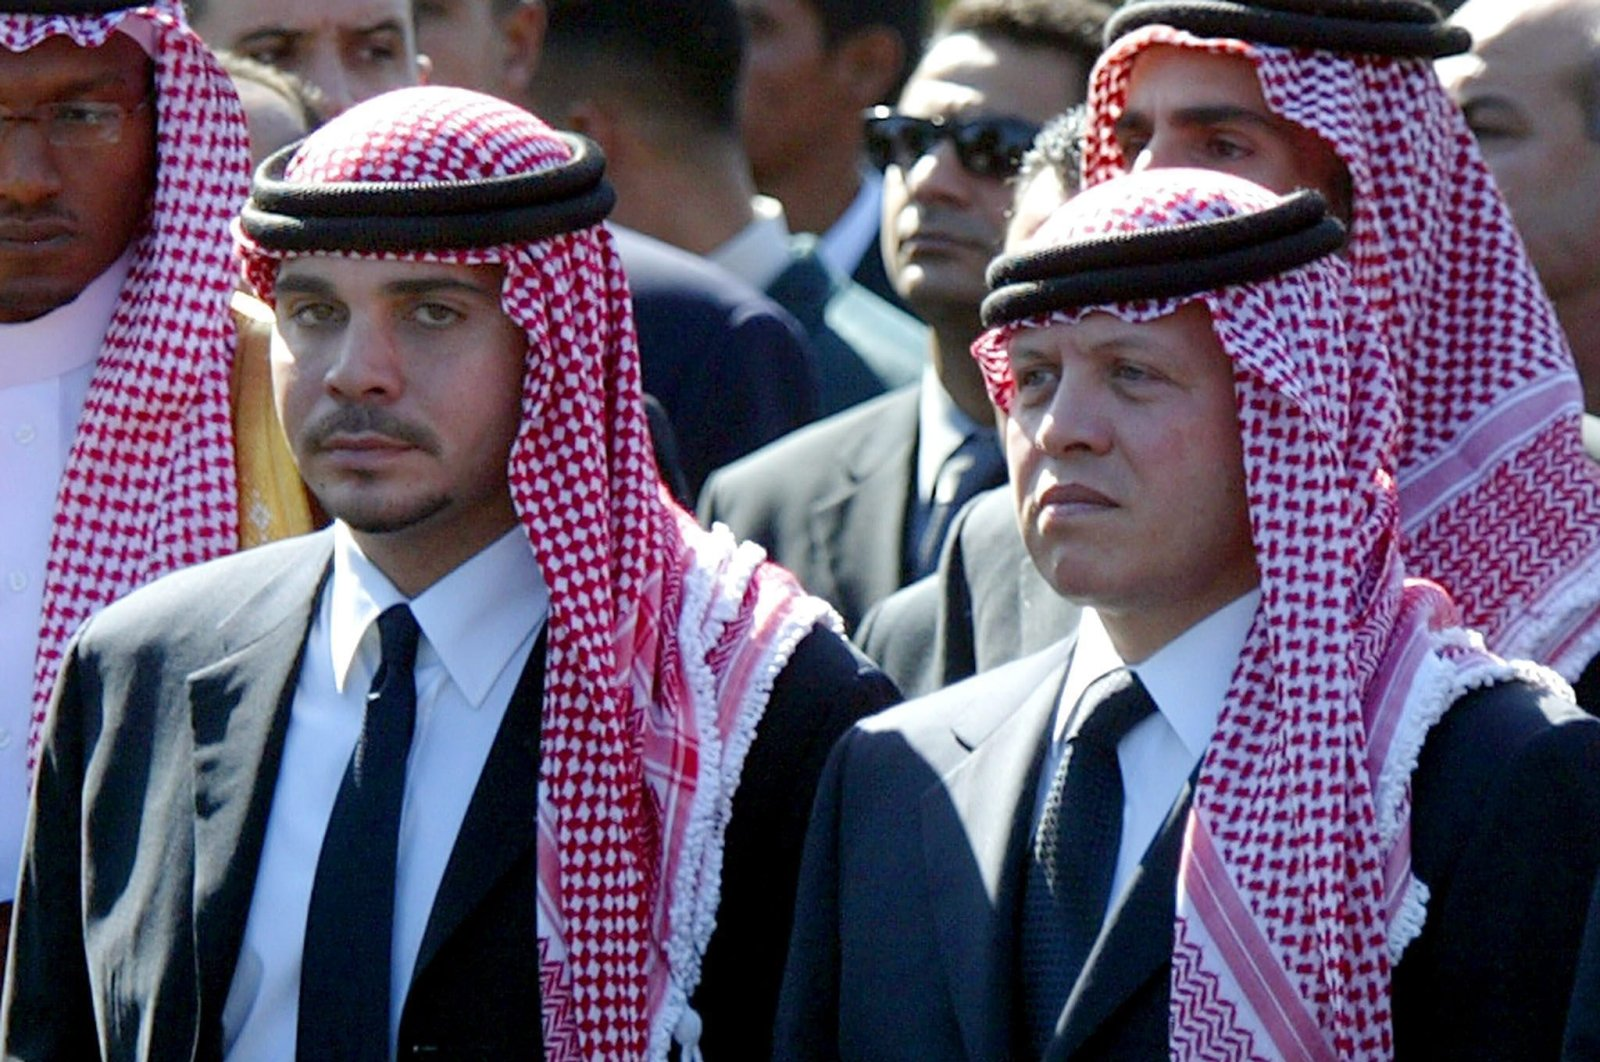 Former Jordanian Crown Prince Hamzah bin Al Hussein (L) with his half-brother King Abdullah II of Jordan (R) as they walk together in the funeral procession of Palestinian President Yasser Arafat in Cairo, Egypt, 12 Nov. 12, 2004.  (EPA-EFE/MIKE NELSON)